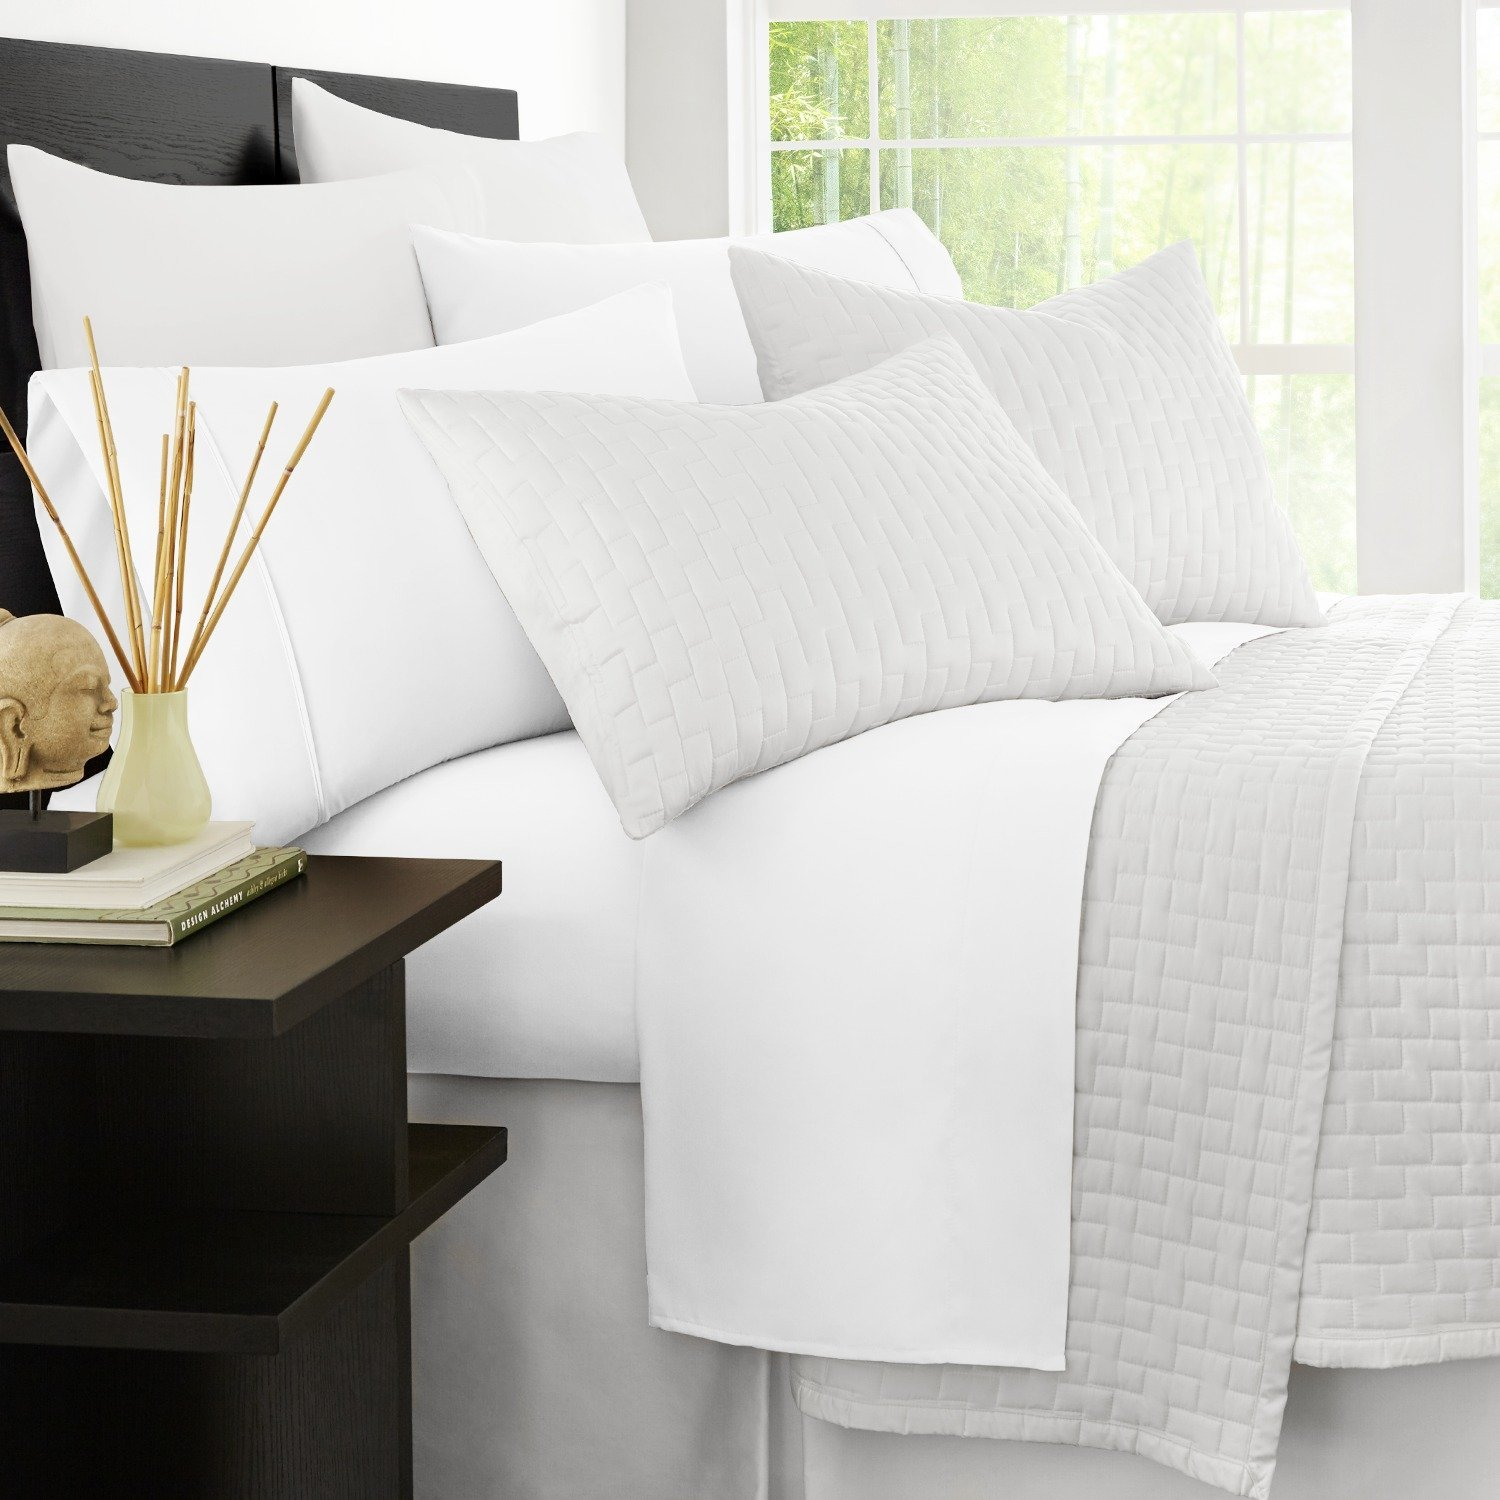 Get Quotations · Zen Bamboo Luxury Bed Sheets   Eco Friendly,  Hypoallergenic And Wrinkle Resistant Bamboo